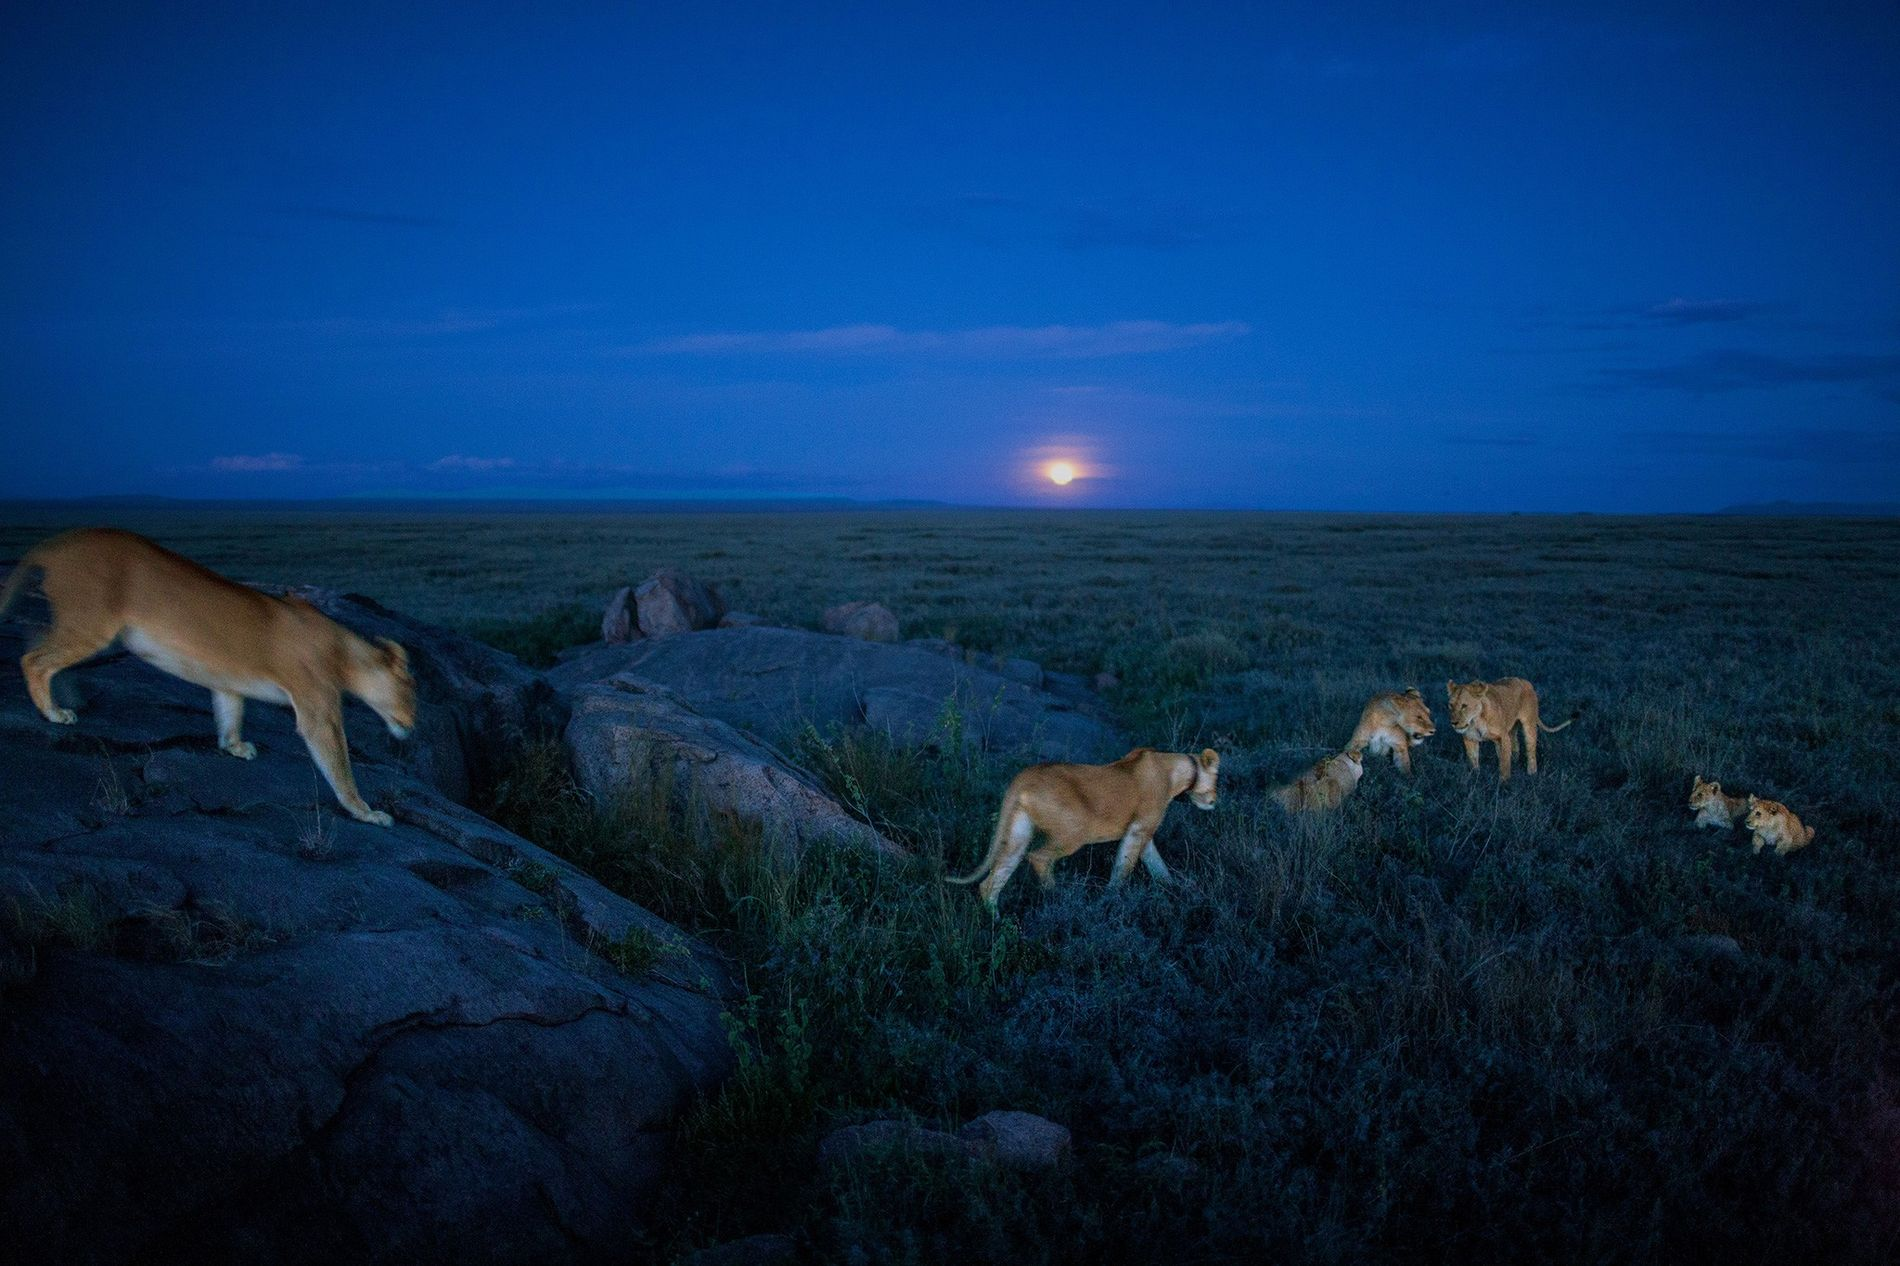 Members of the Vumbi pride set out on an evening hunt.